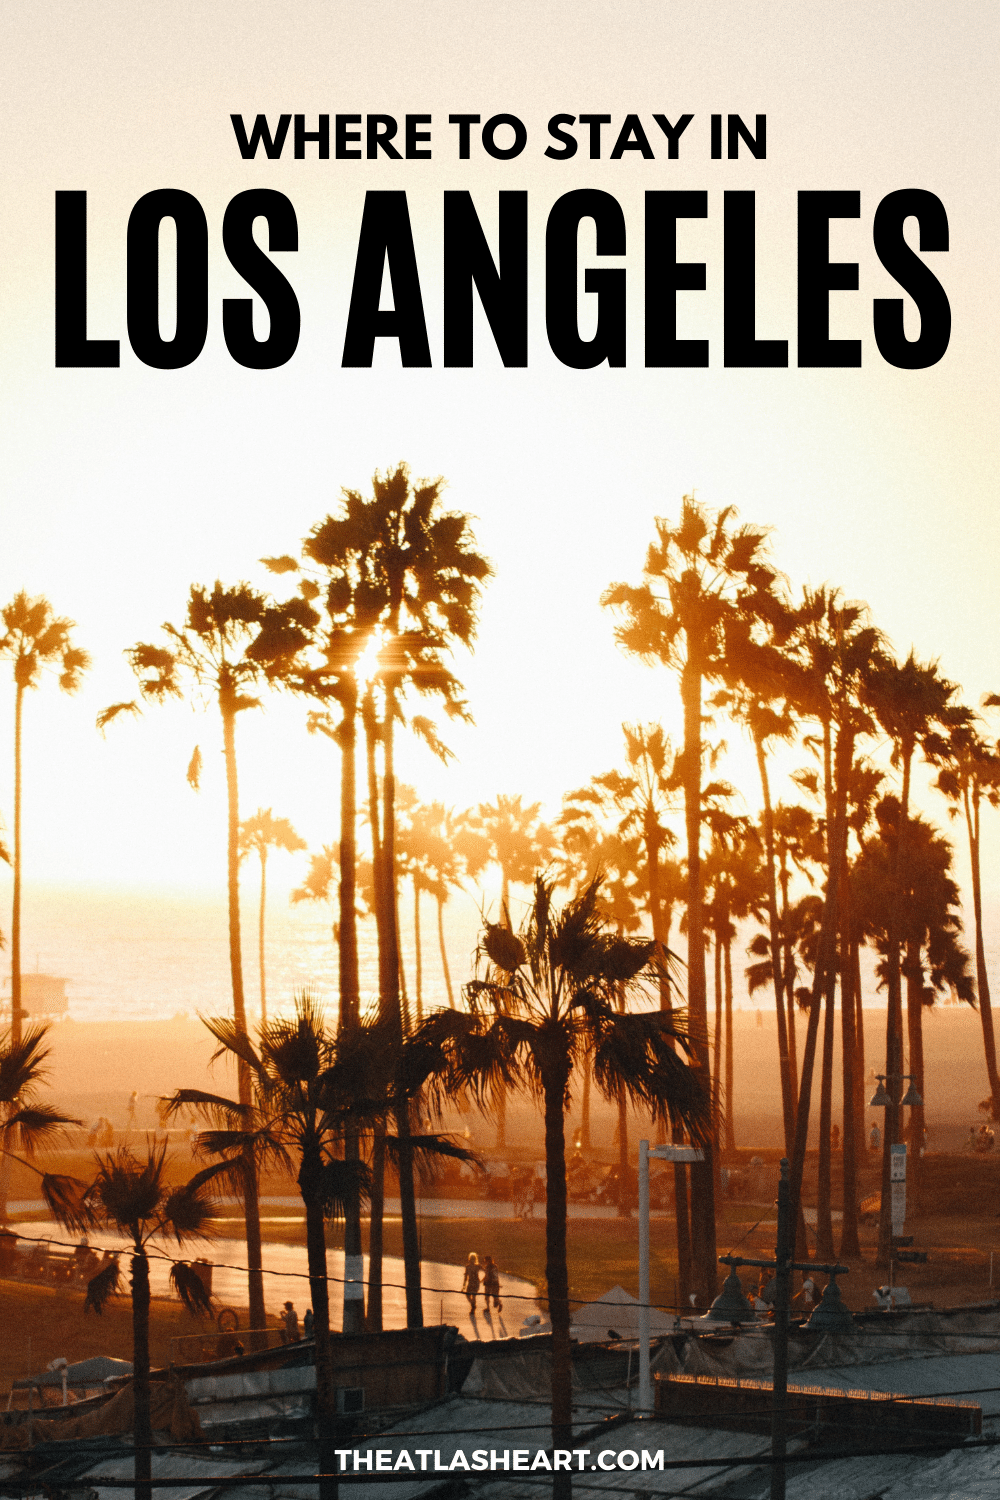 Where to Stay in Los Angeles: Best Hotels, Neighborhoods & Travel Tips